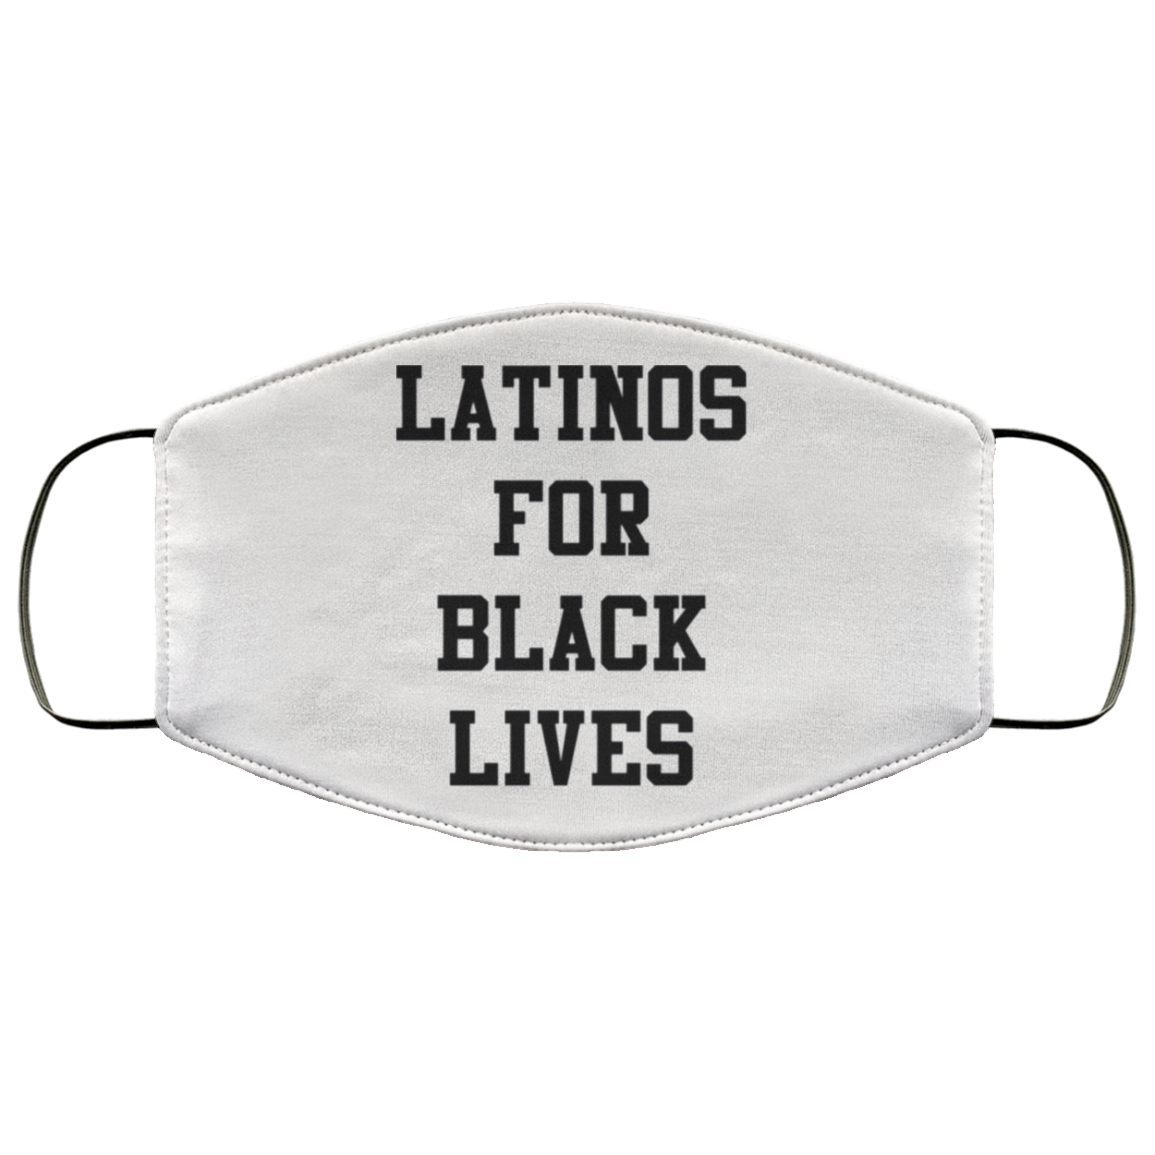 Latinos For Black Lives Face Masks, Stop Killing Black People Face Masks Protest